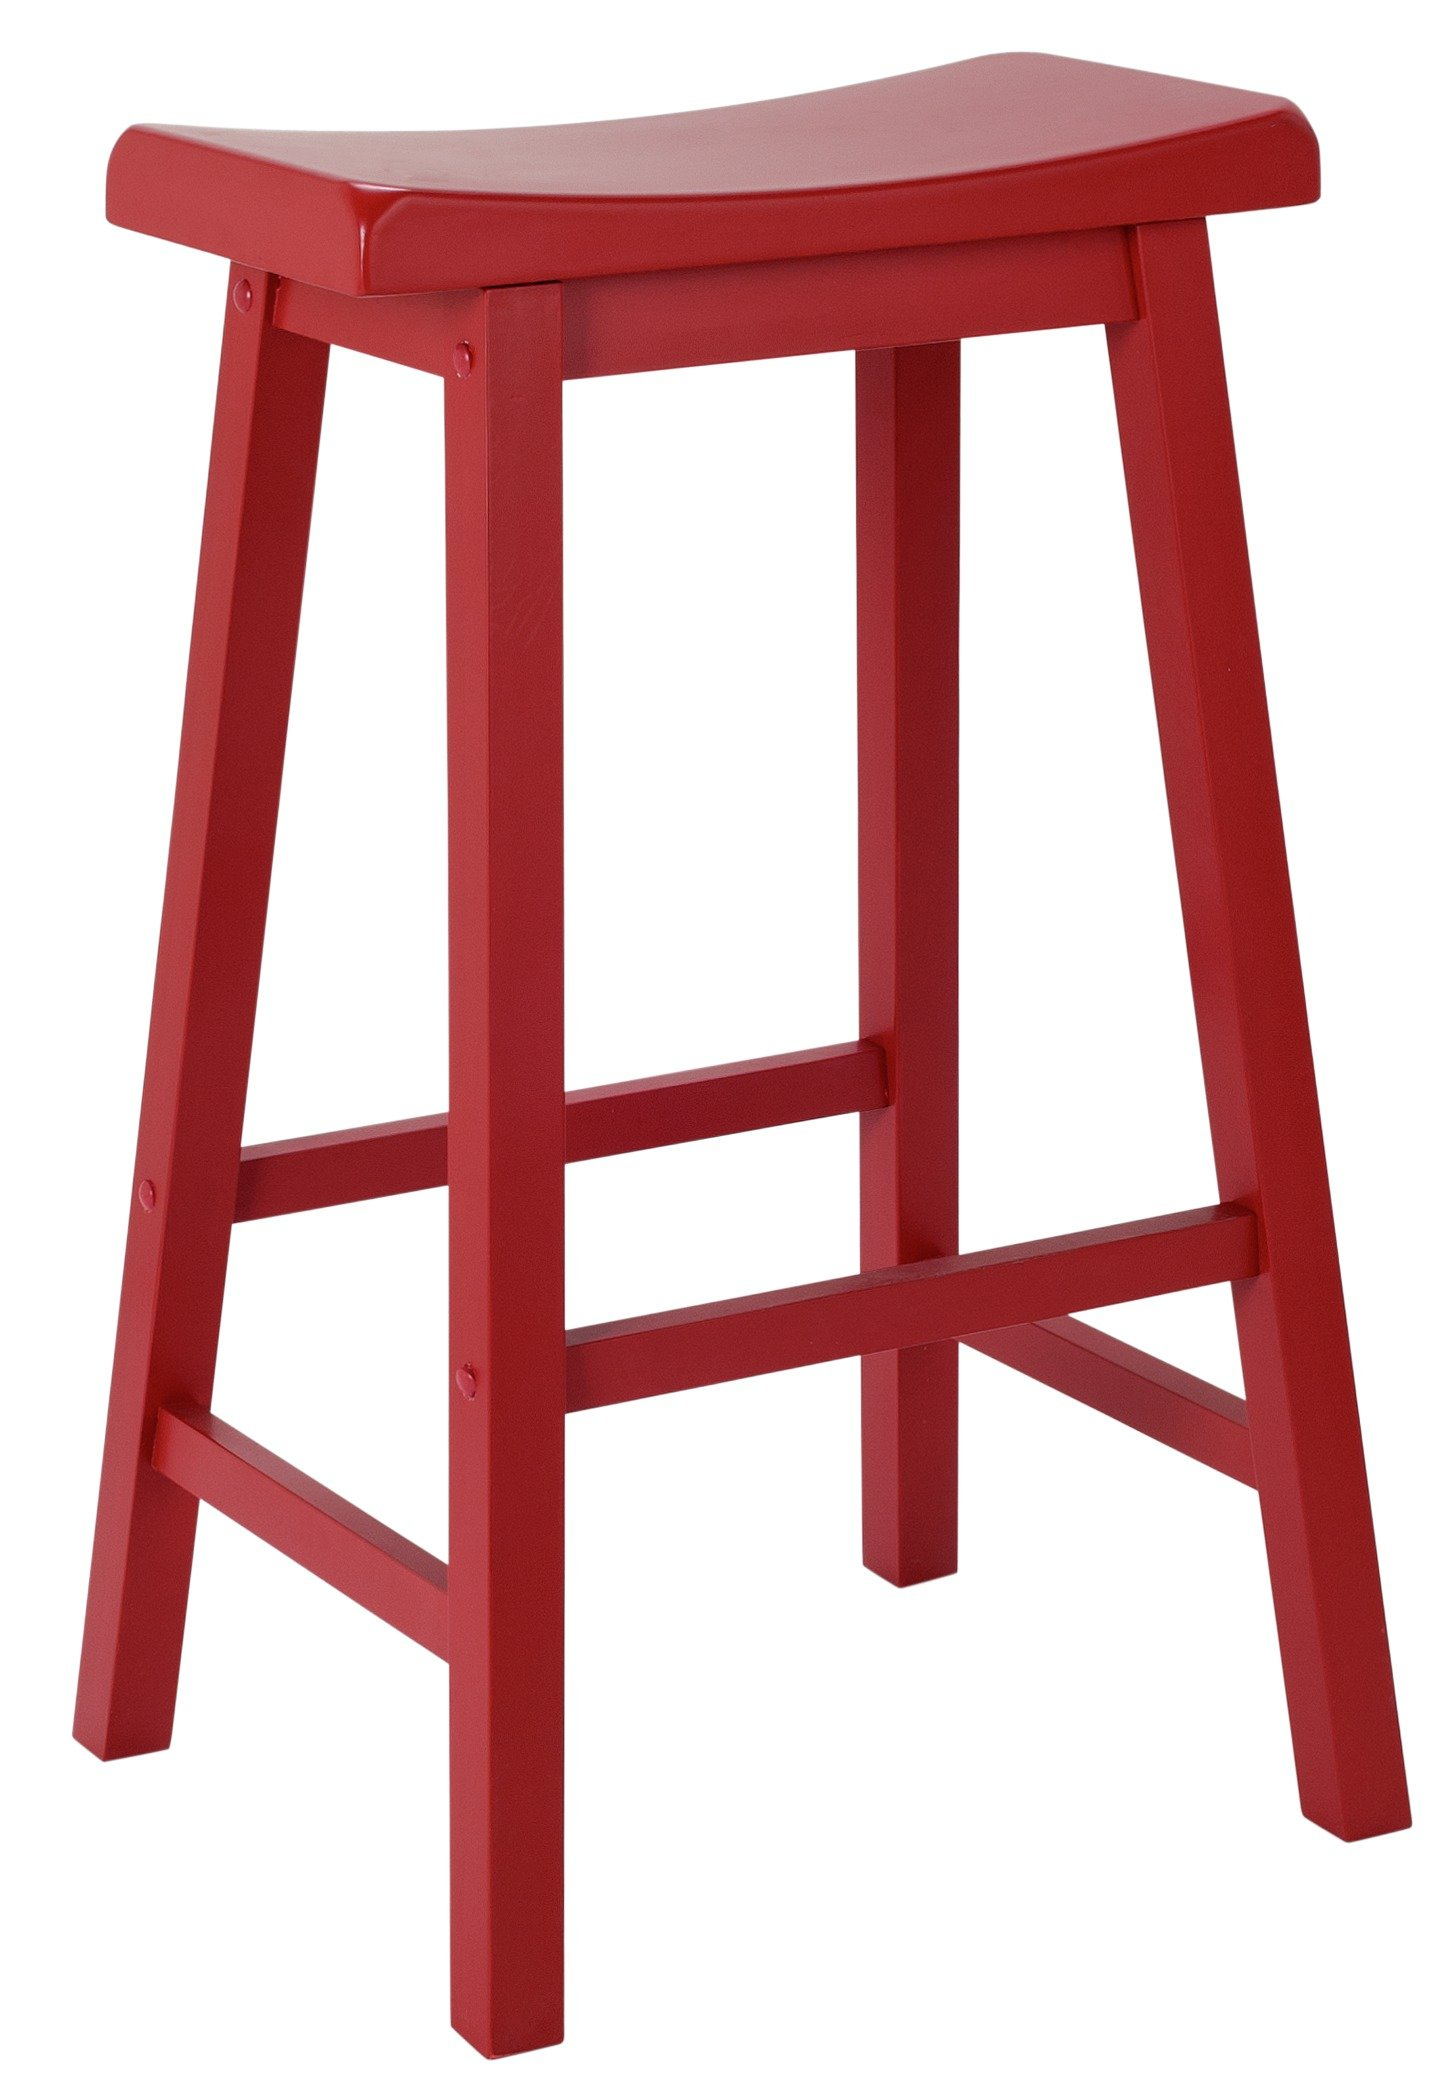 Hygena Solid Wood Saddle Bar Stool - Red  sc 1 st  Argos & Buy Hygena Solid Wood Saddle Bar Stool - Red at Argos.co.uk - Your ... islam-shia.org